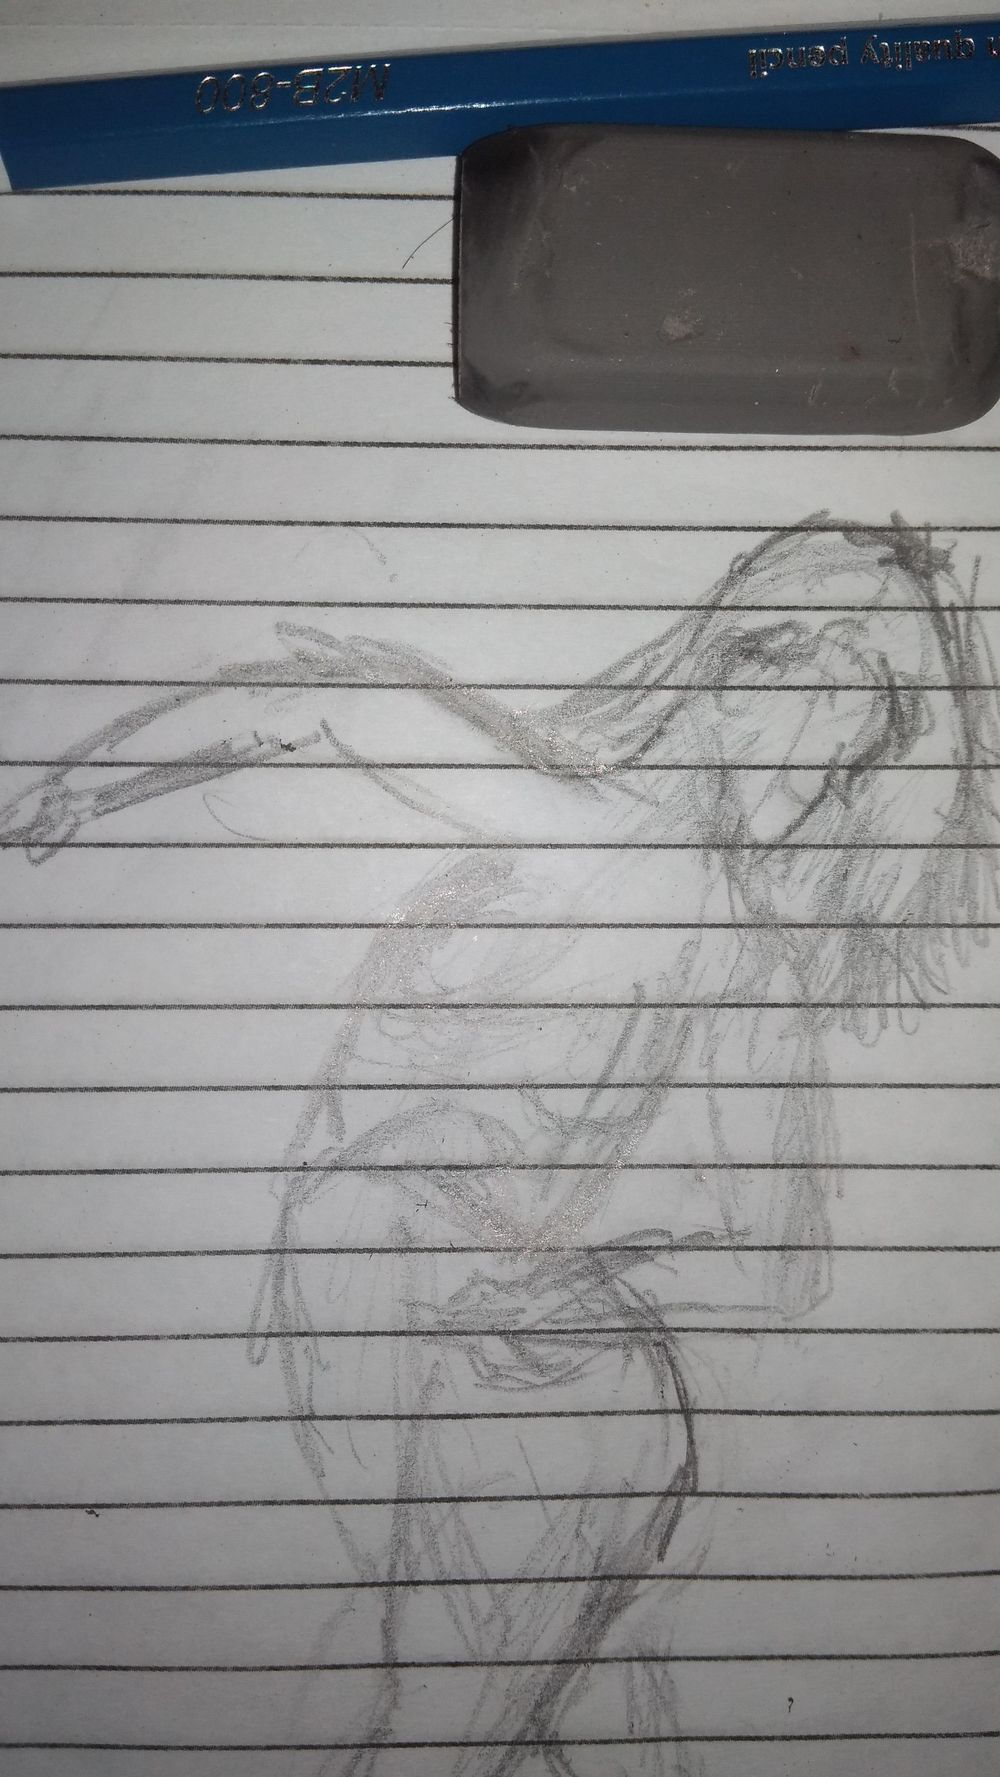 Learning Figure Drawing, - image 2 - student project